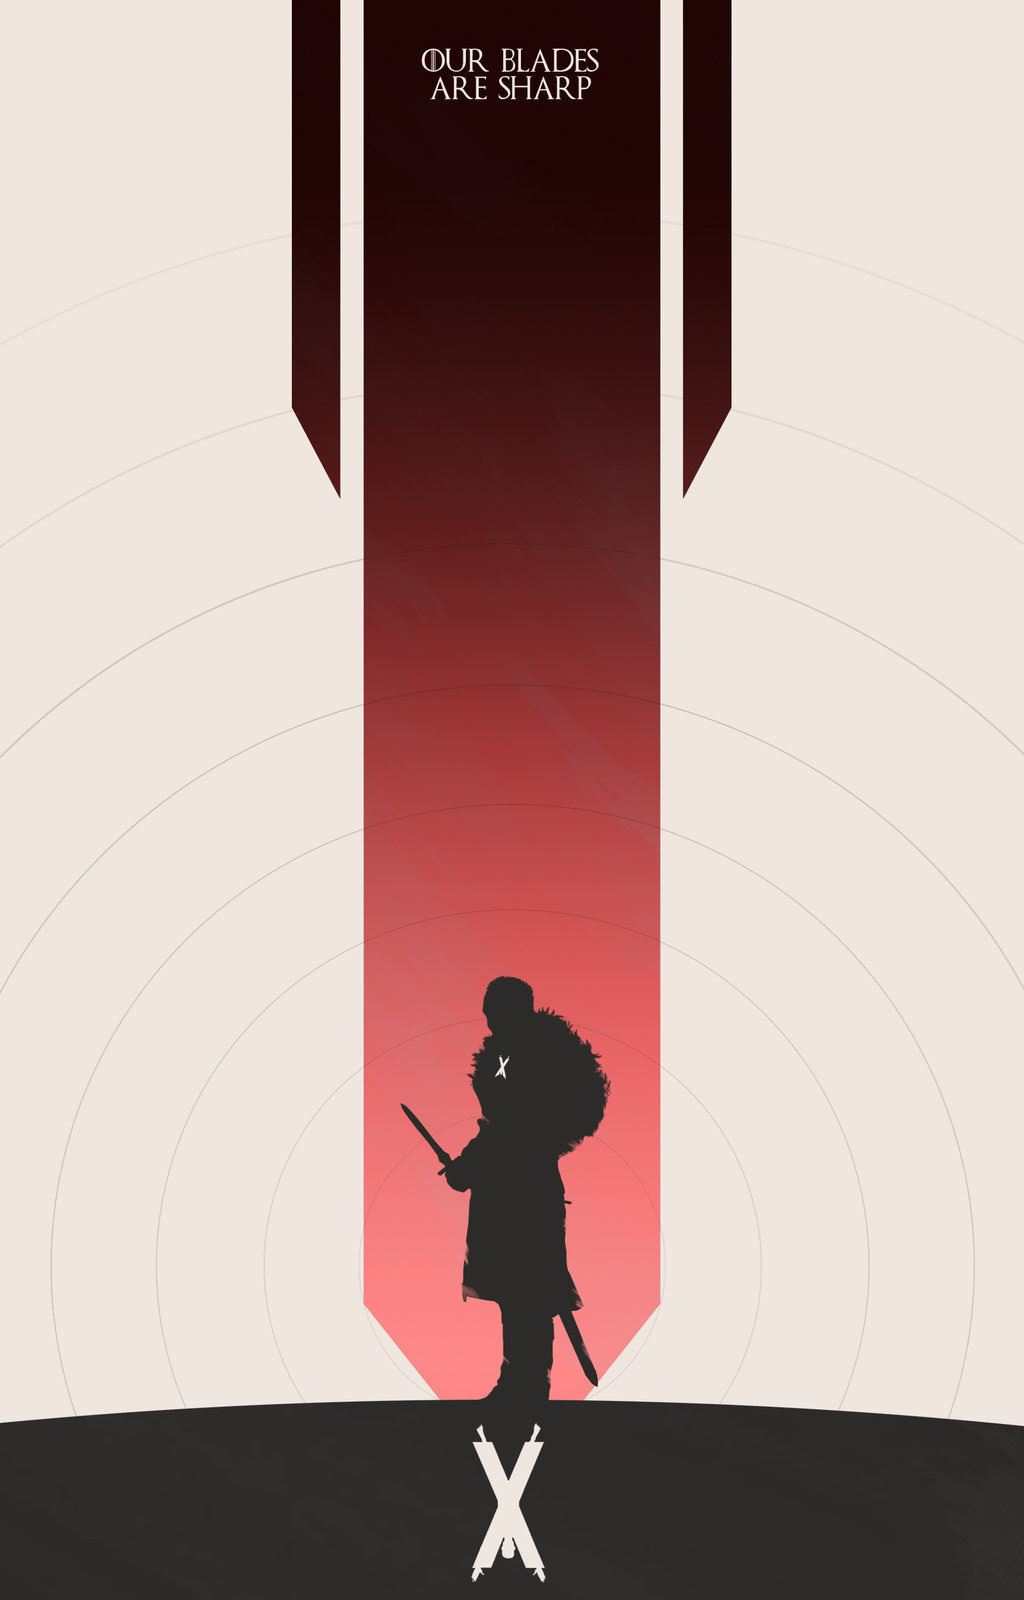 Game of Thrones Banners by Colin Morella